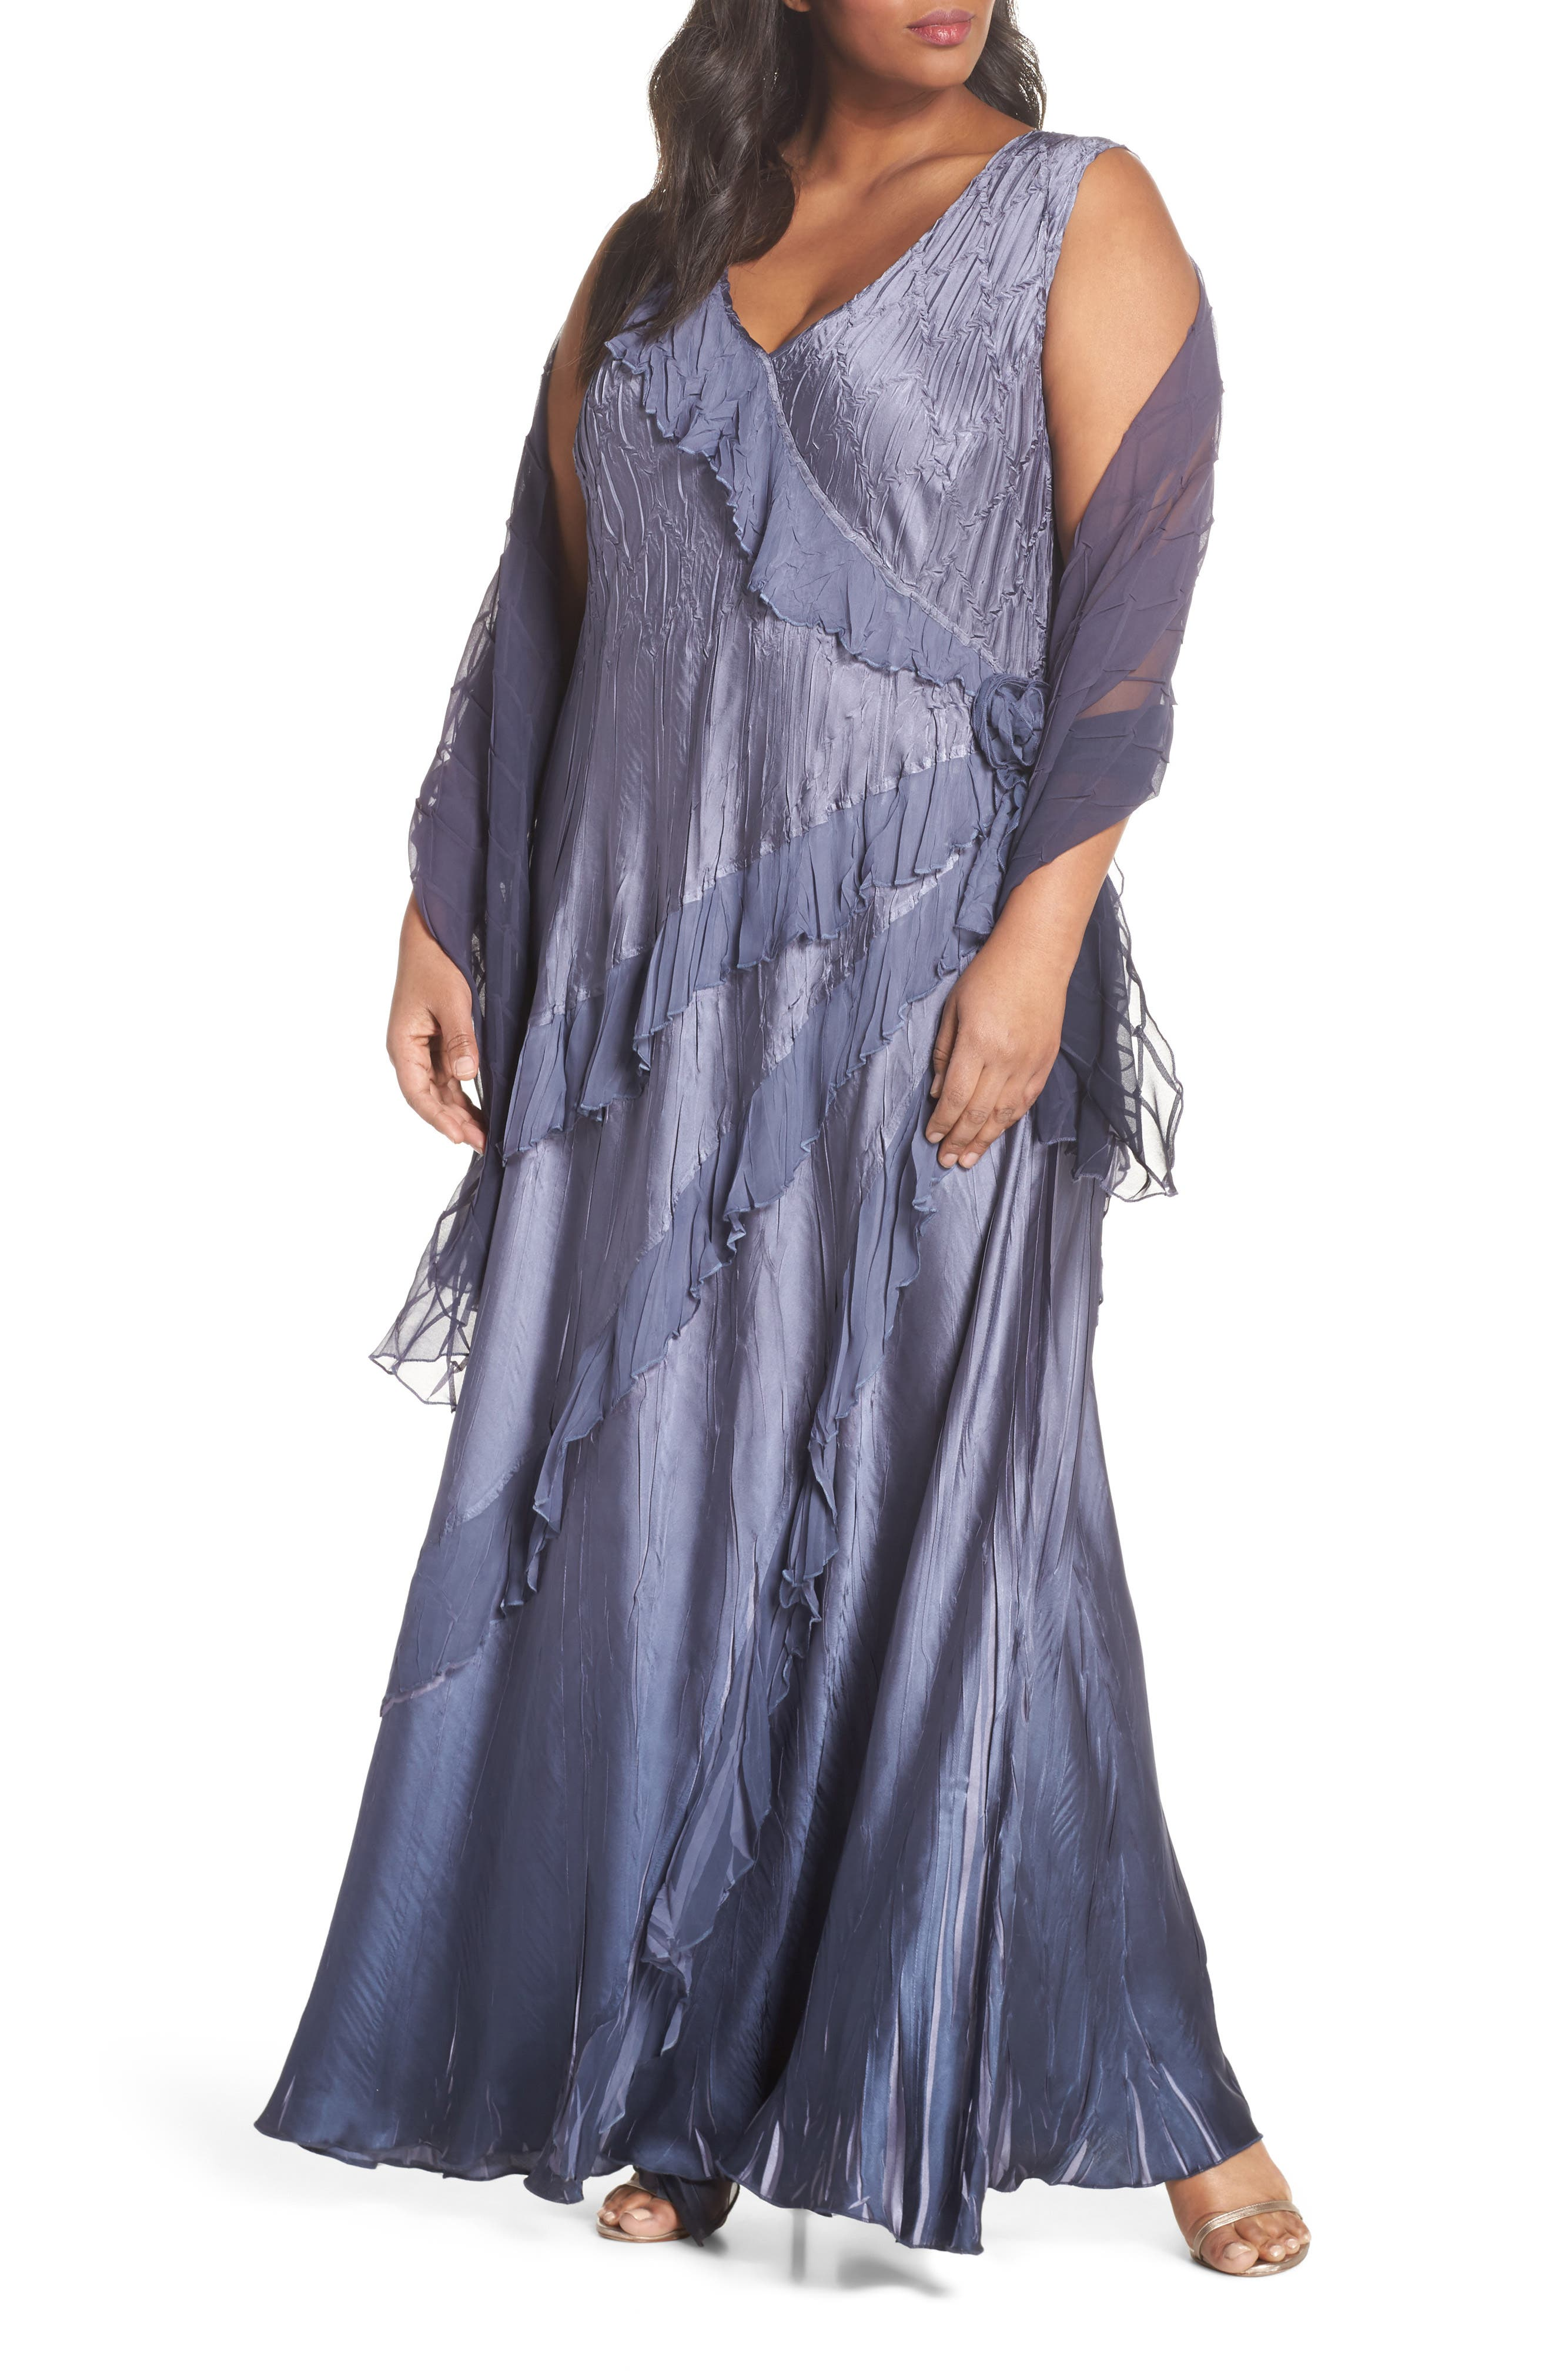 Ruffle Charmeuse Gown with Wrap,                             Main thumbnail 1, color,                             554